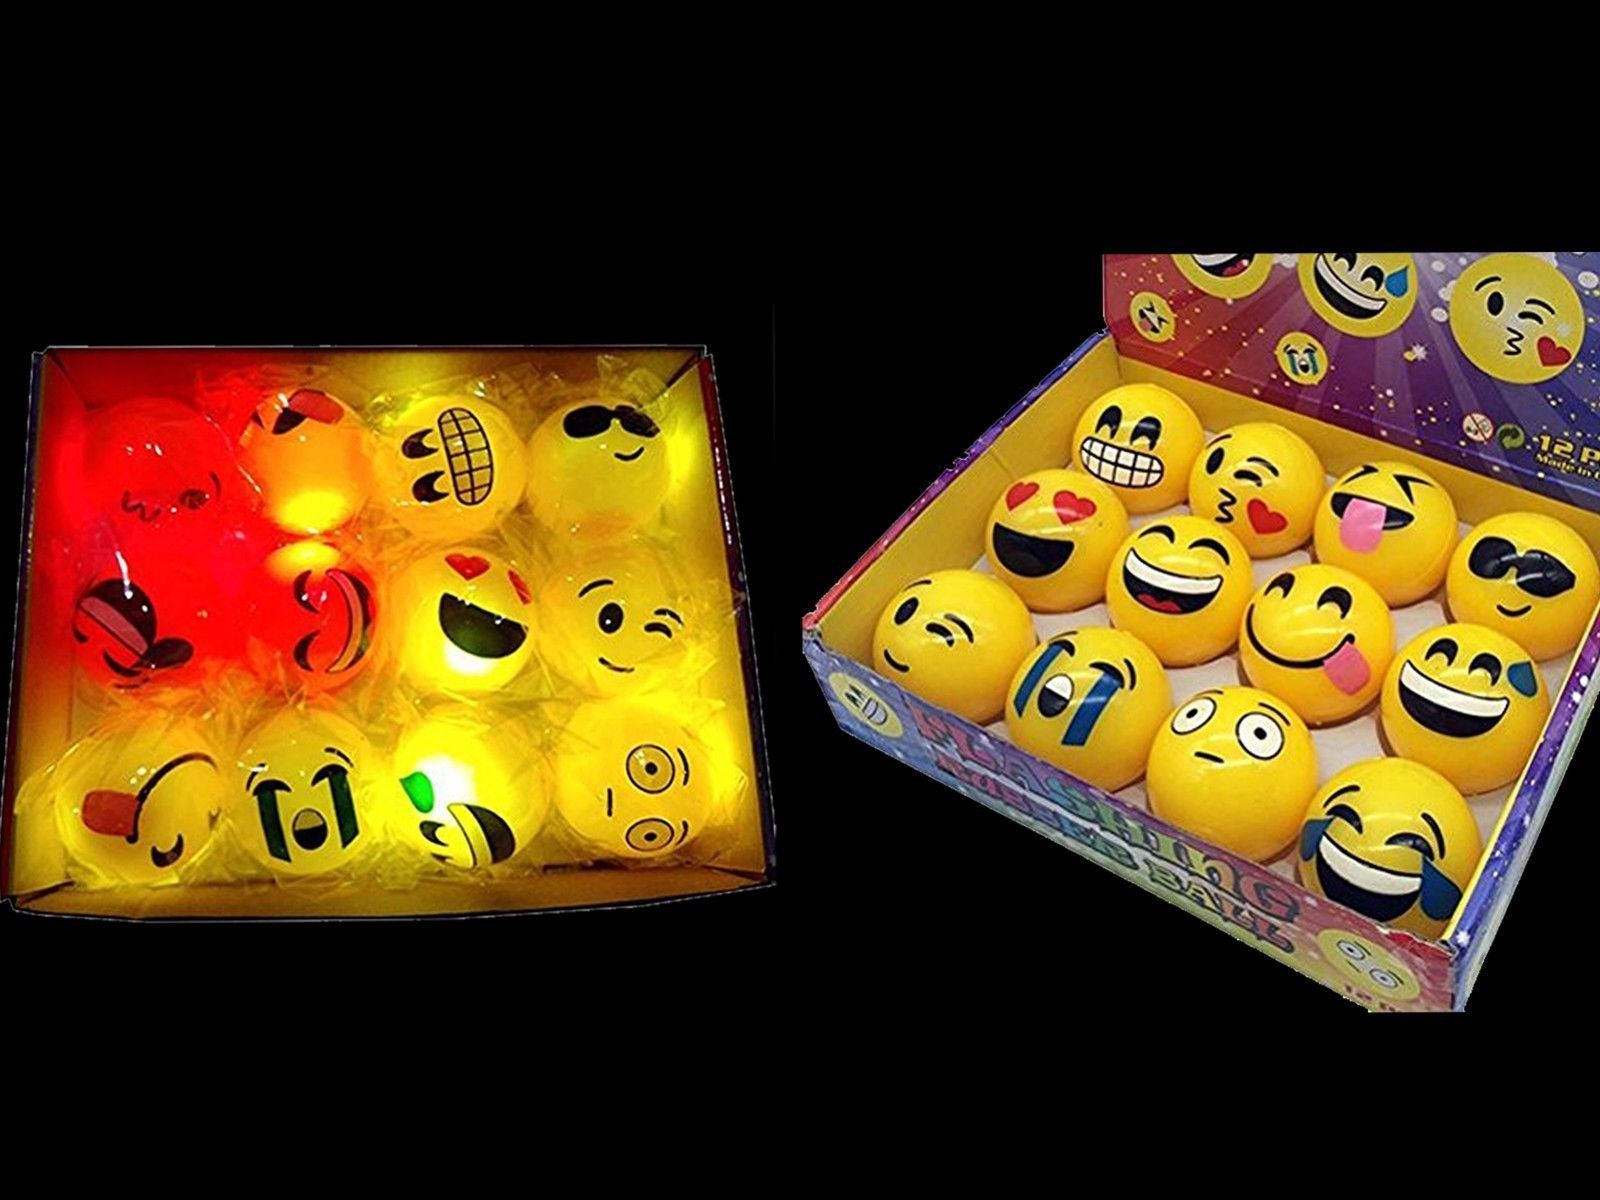 up balls events pin lighting light excitement extreme tlc creative filling with